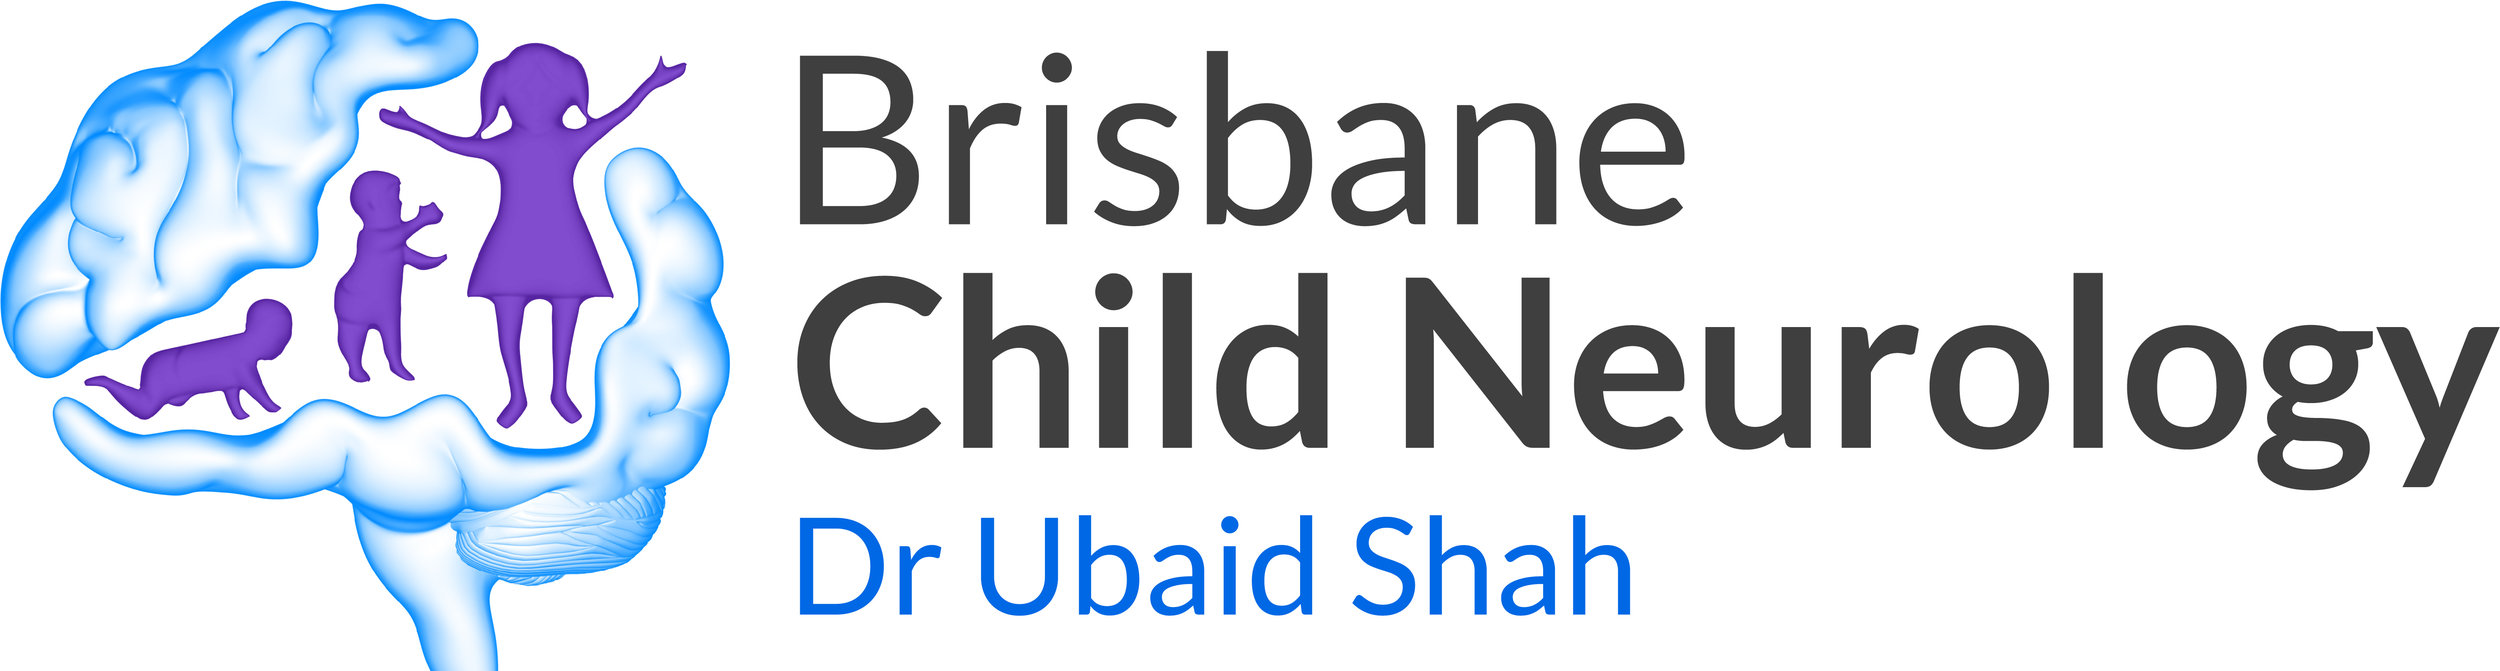 child-neurology_logo+name.jpg